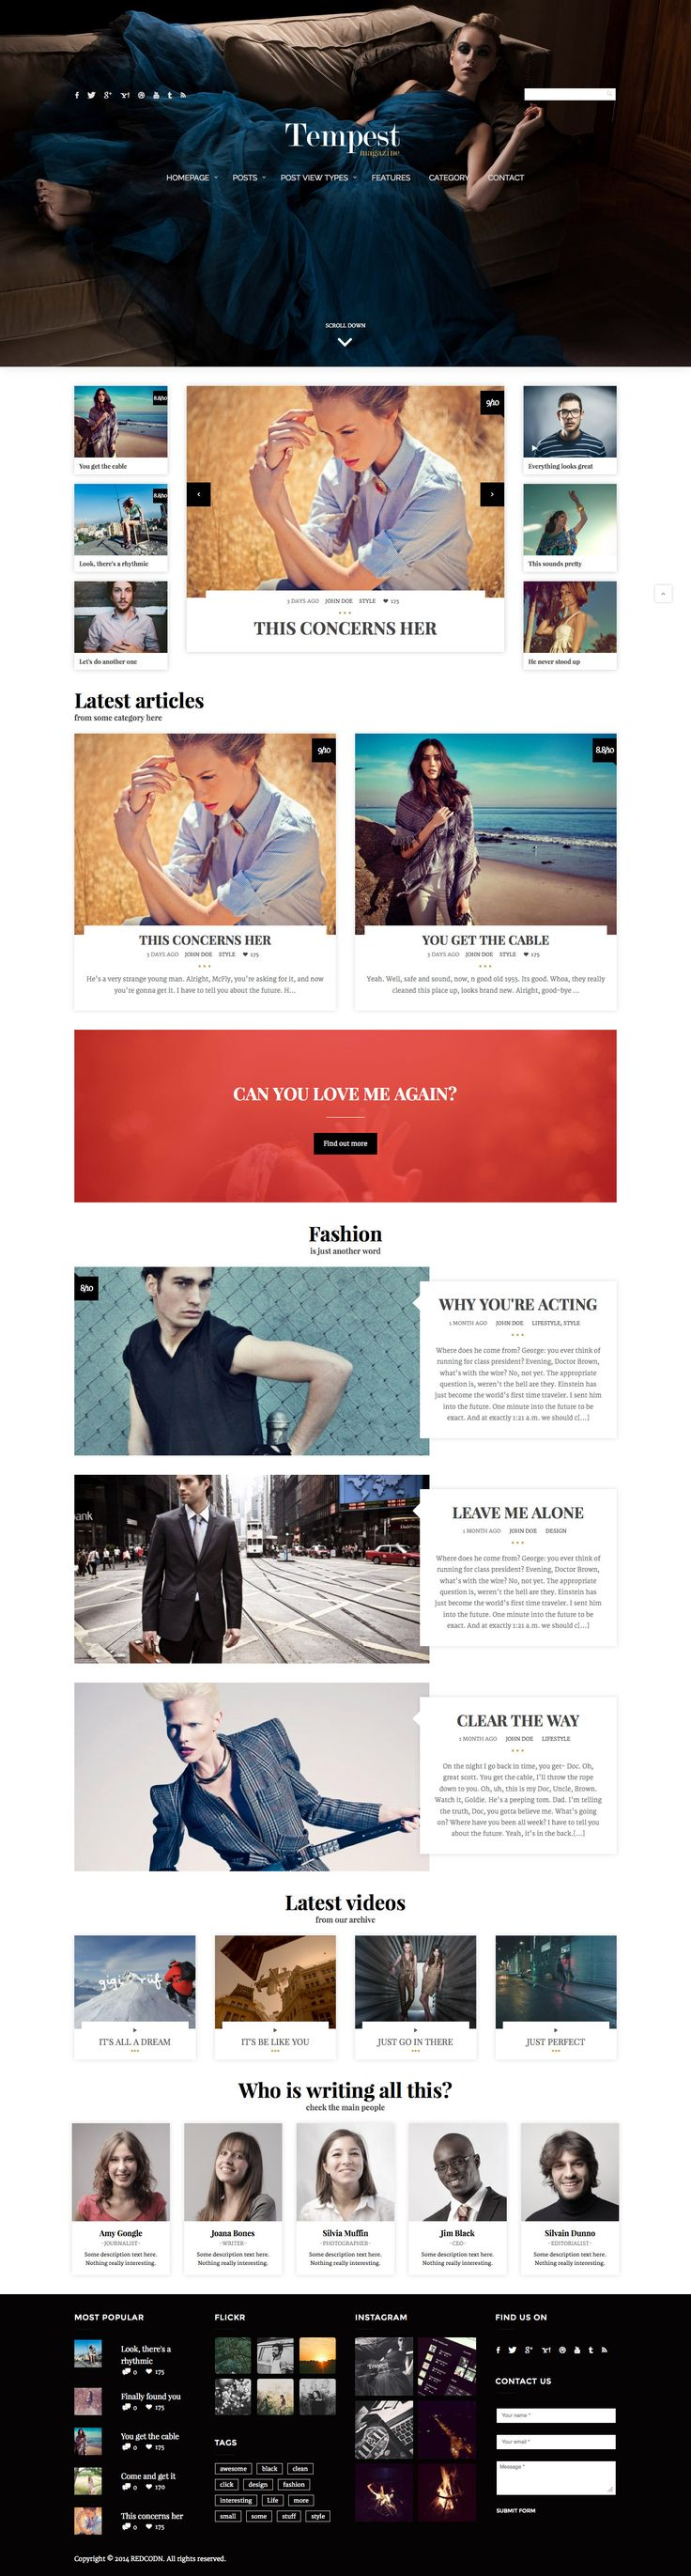 #fashion, #magazine, block, layout, red, header